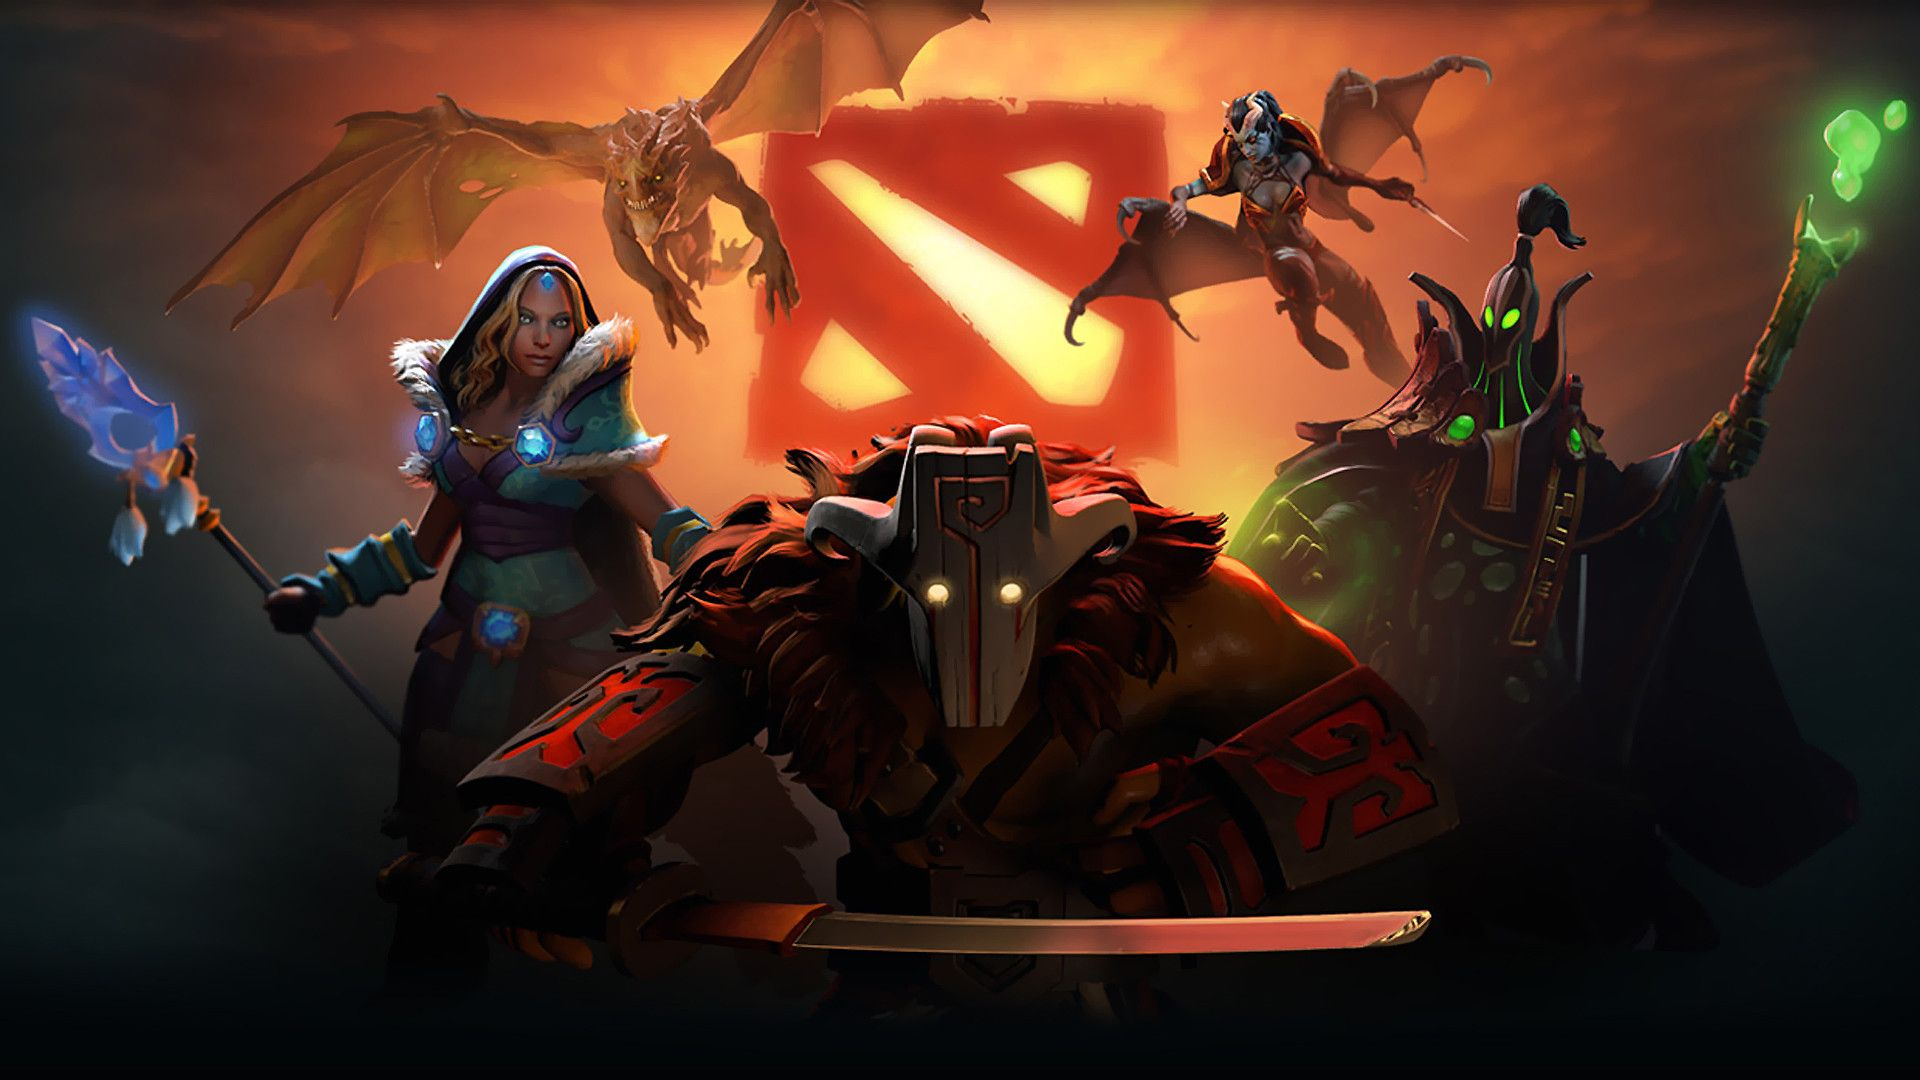 Pinoy S Favorite Dota Heroes To Use Other In 2018 Pinterest